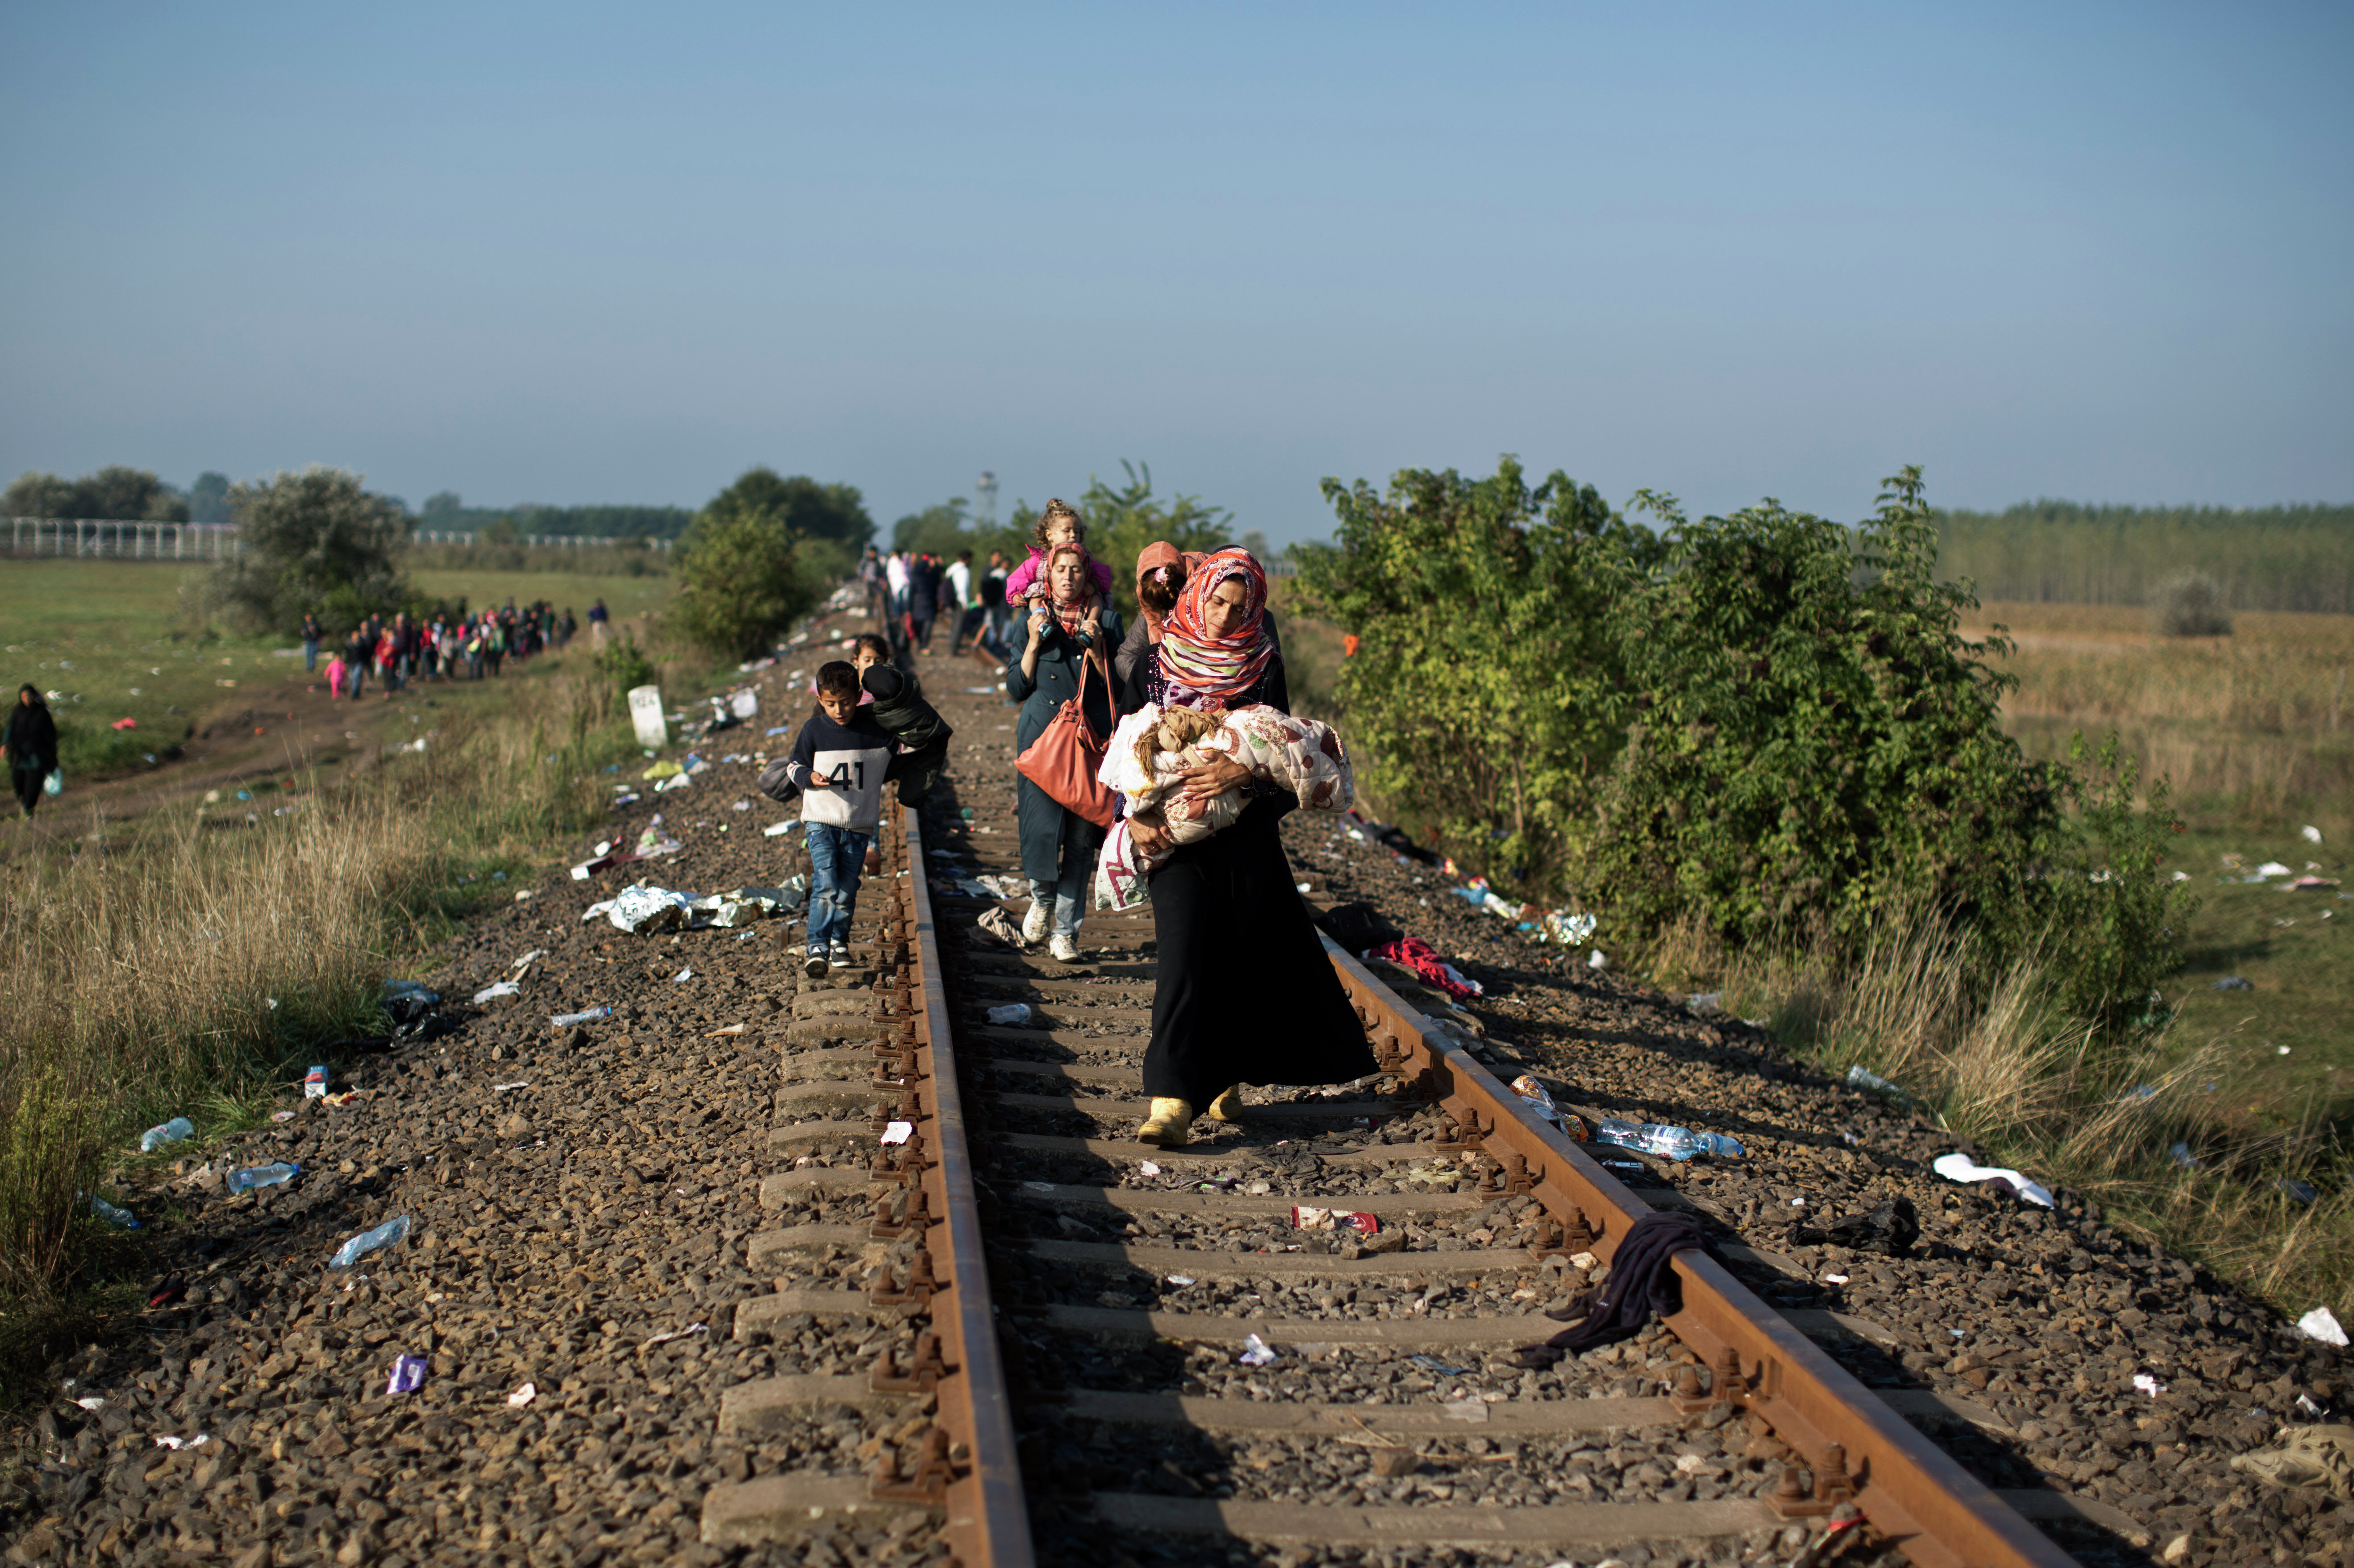 Syrian women carrying their children make their way along a railway track after crossing the Serbian-Hungarian border near Roszke, southern Hungary, Sunday, Sept. 13, 2015